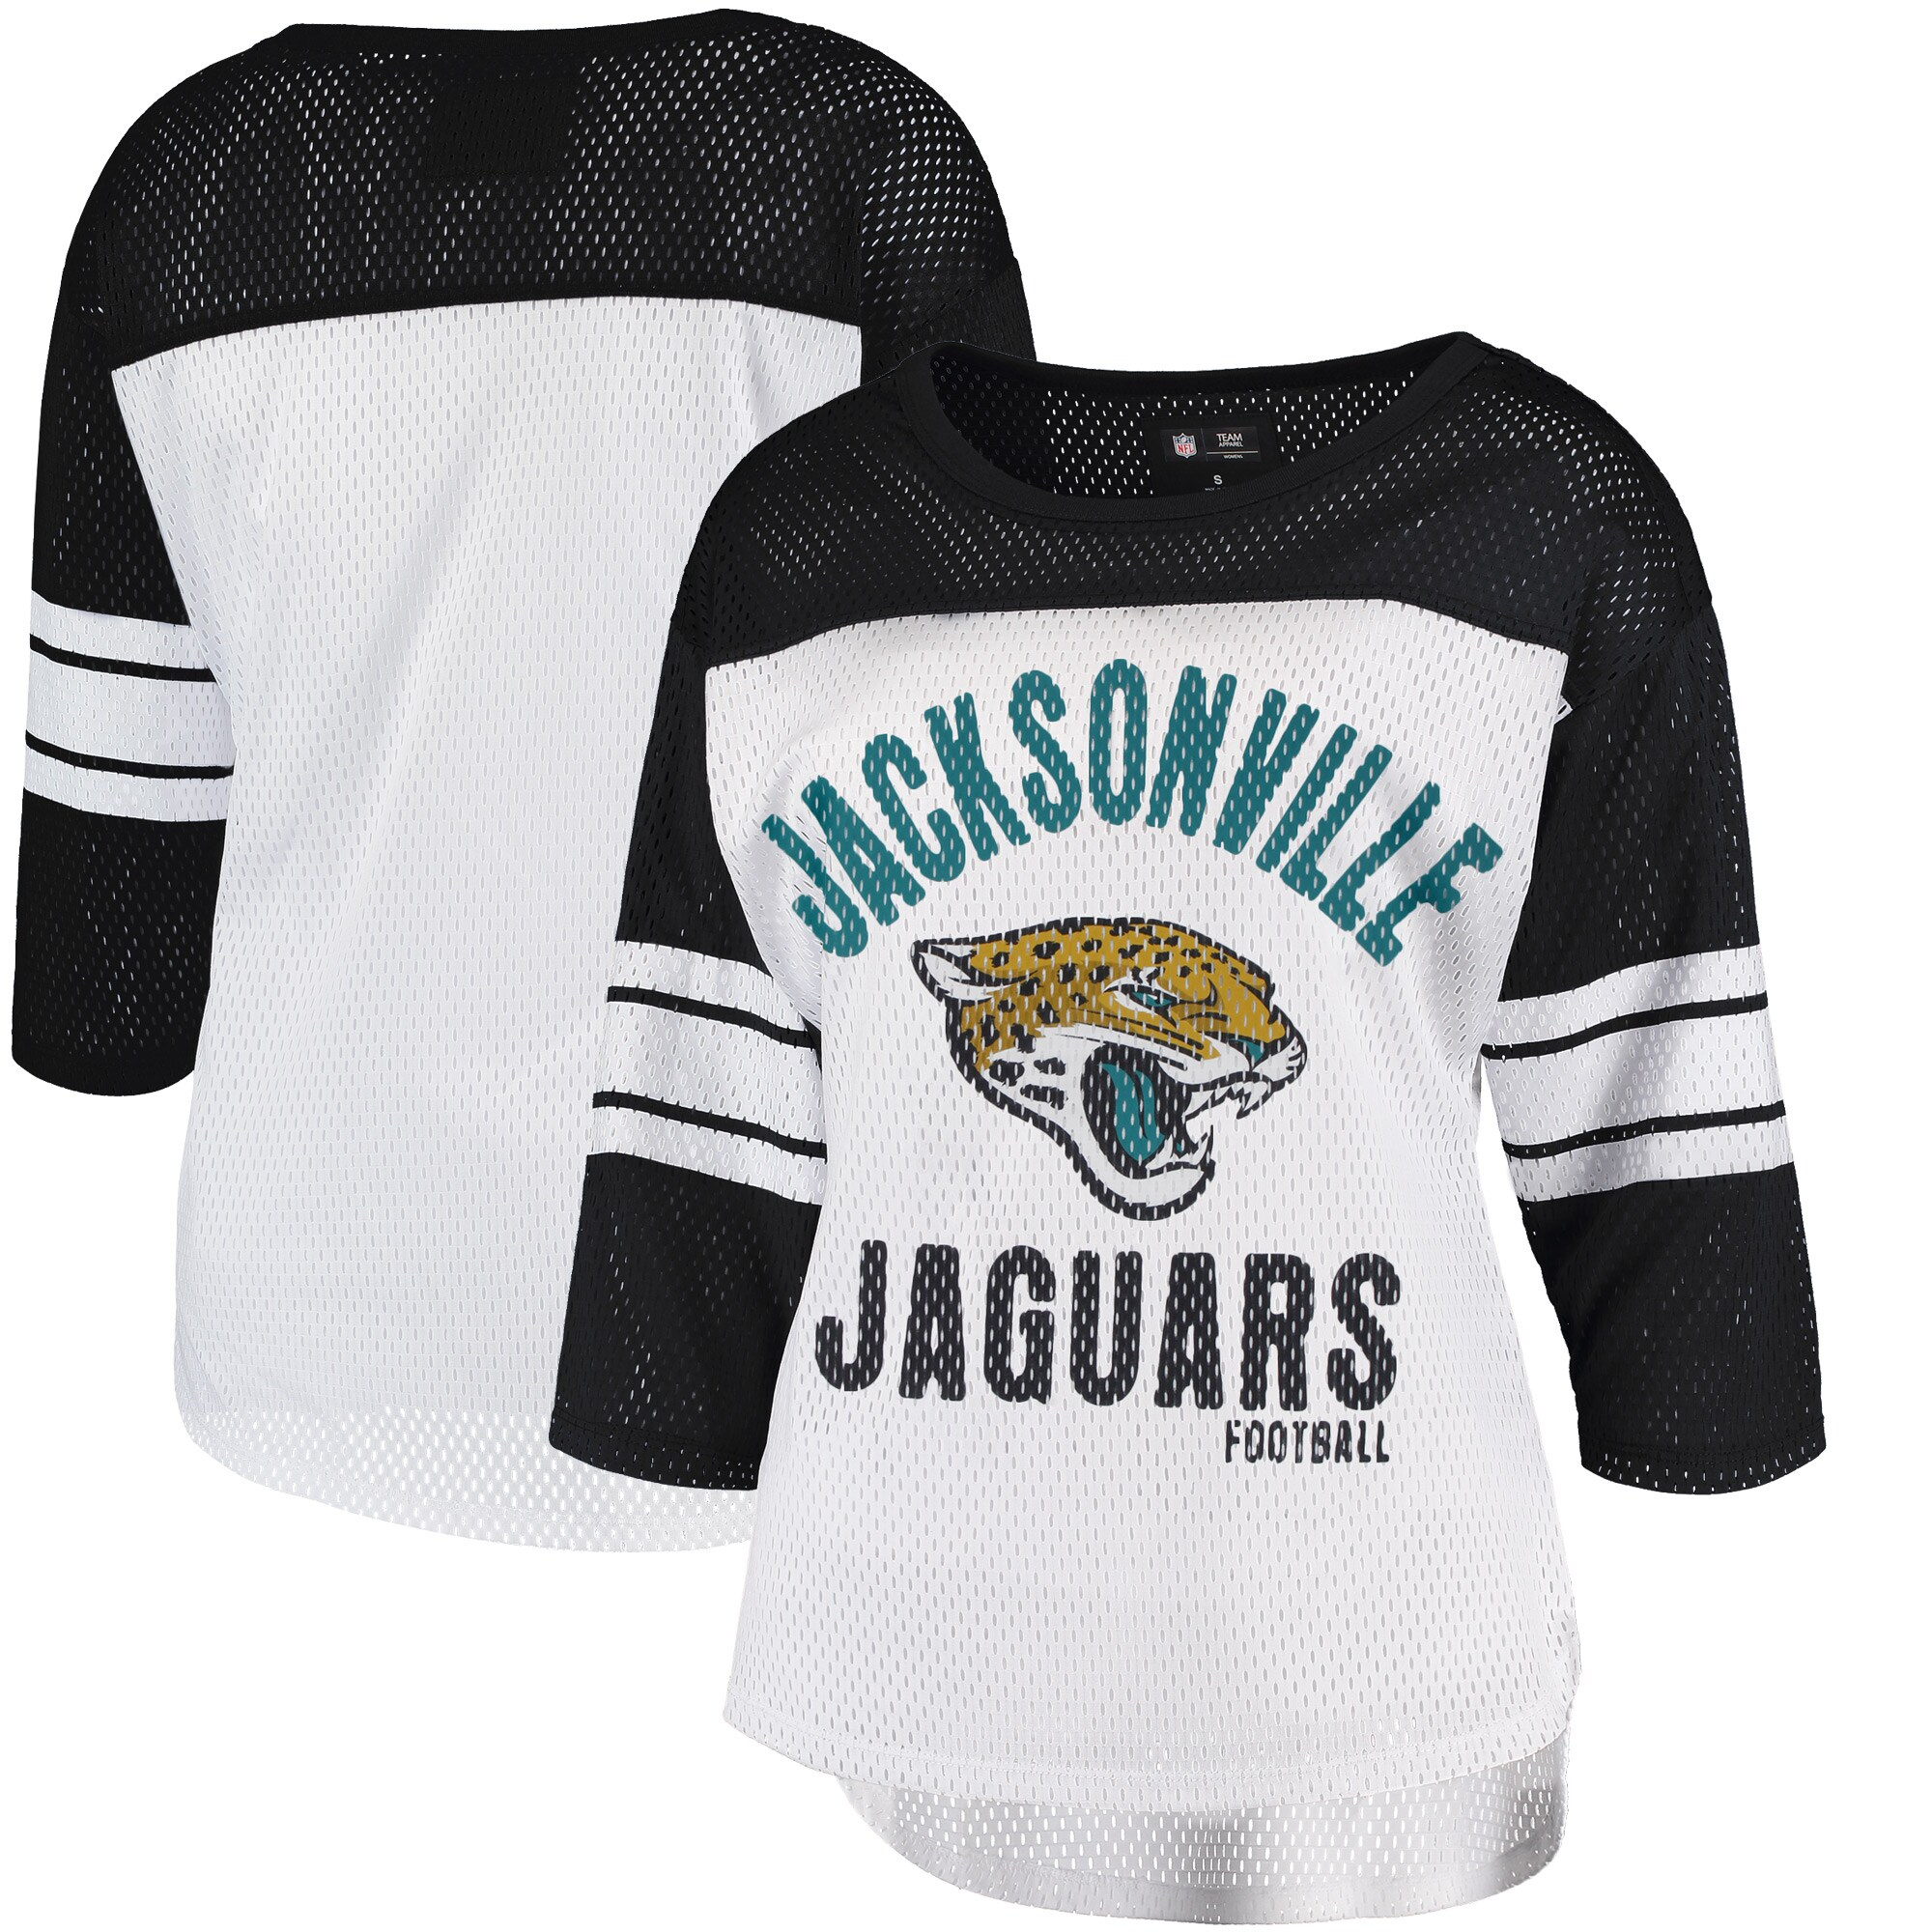 Jacksonville Jaguars G-III 4Her by Carl Banks Women's First Team Three-Quarter Sleeve Mesh T-Shirt - White/Black